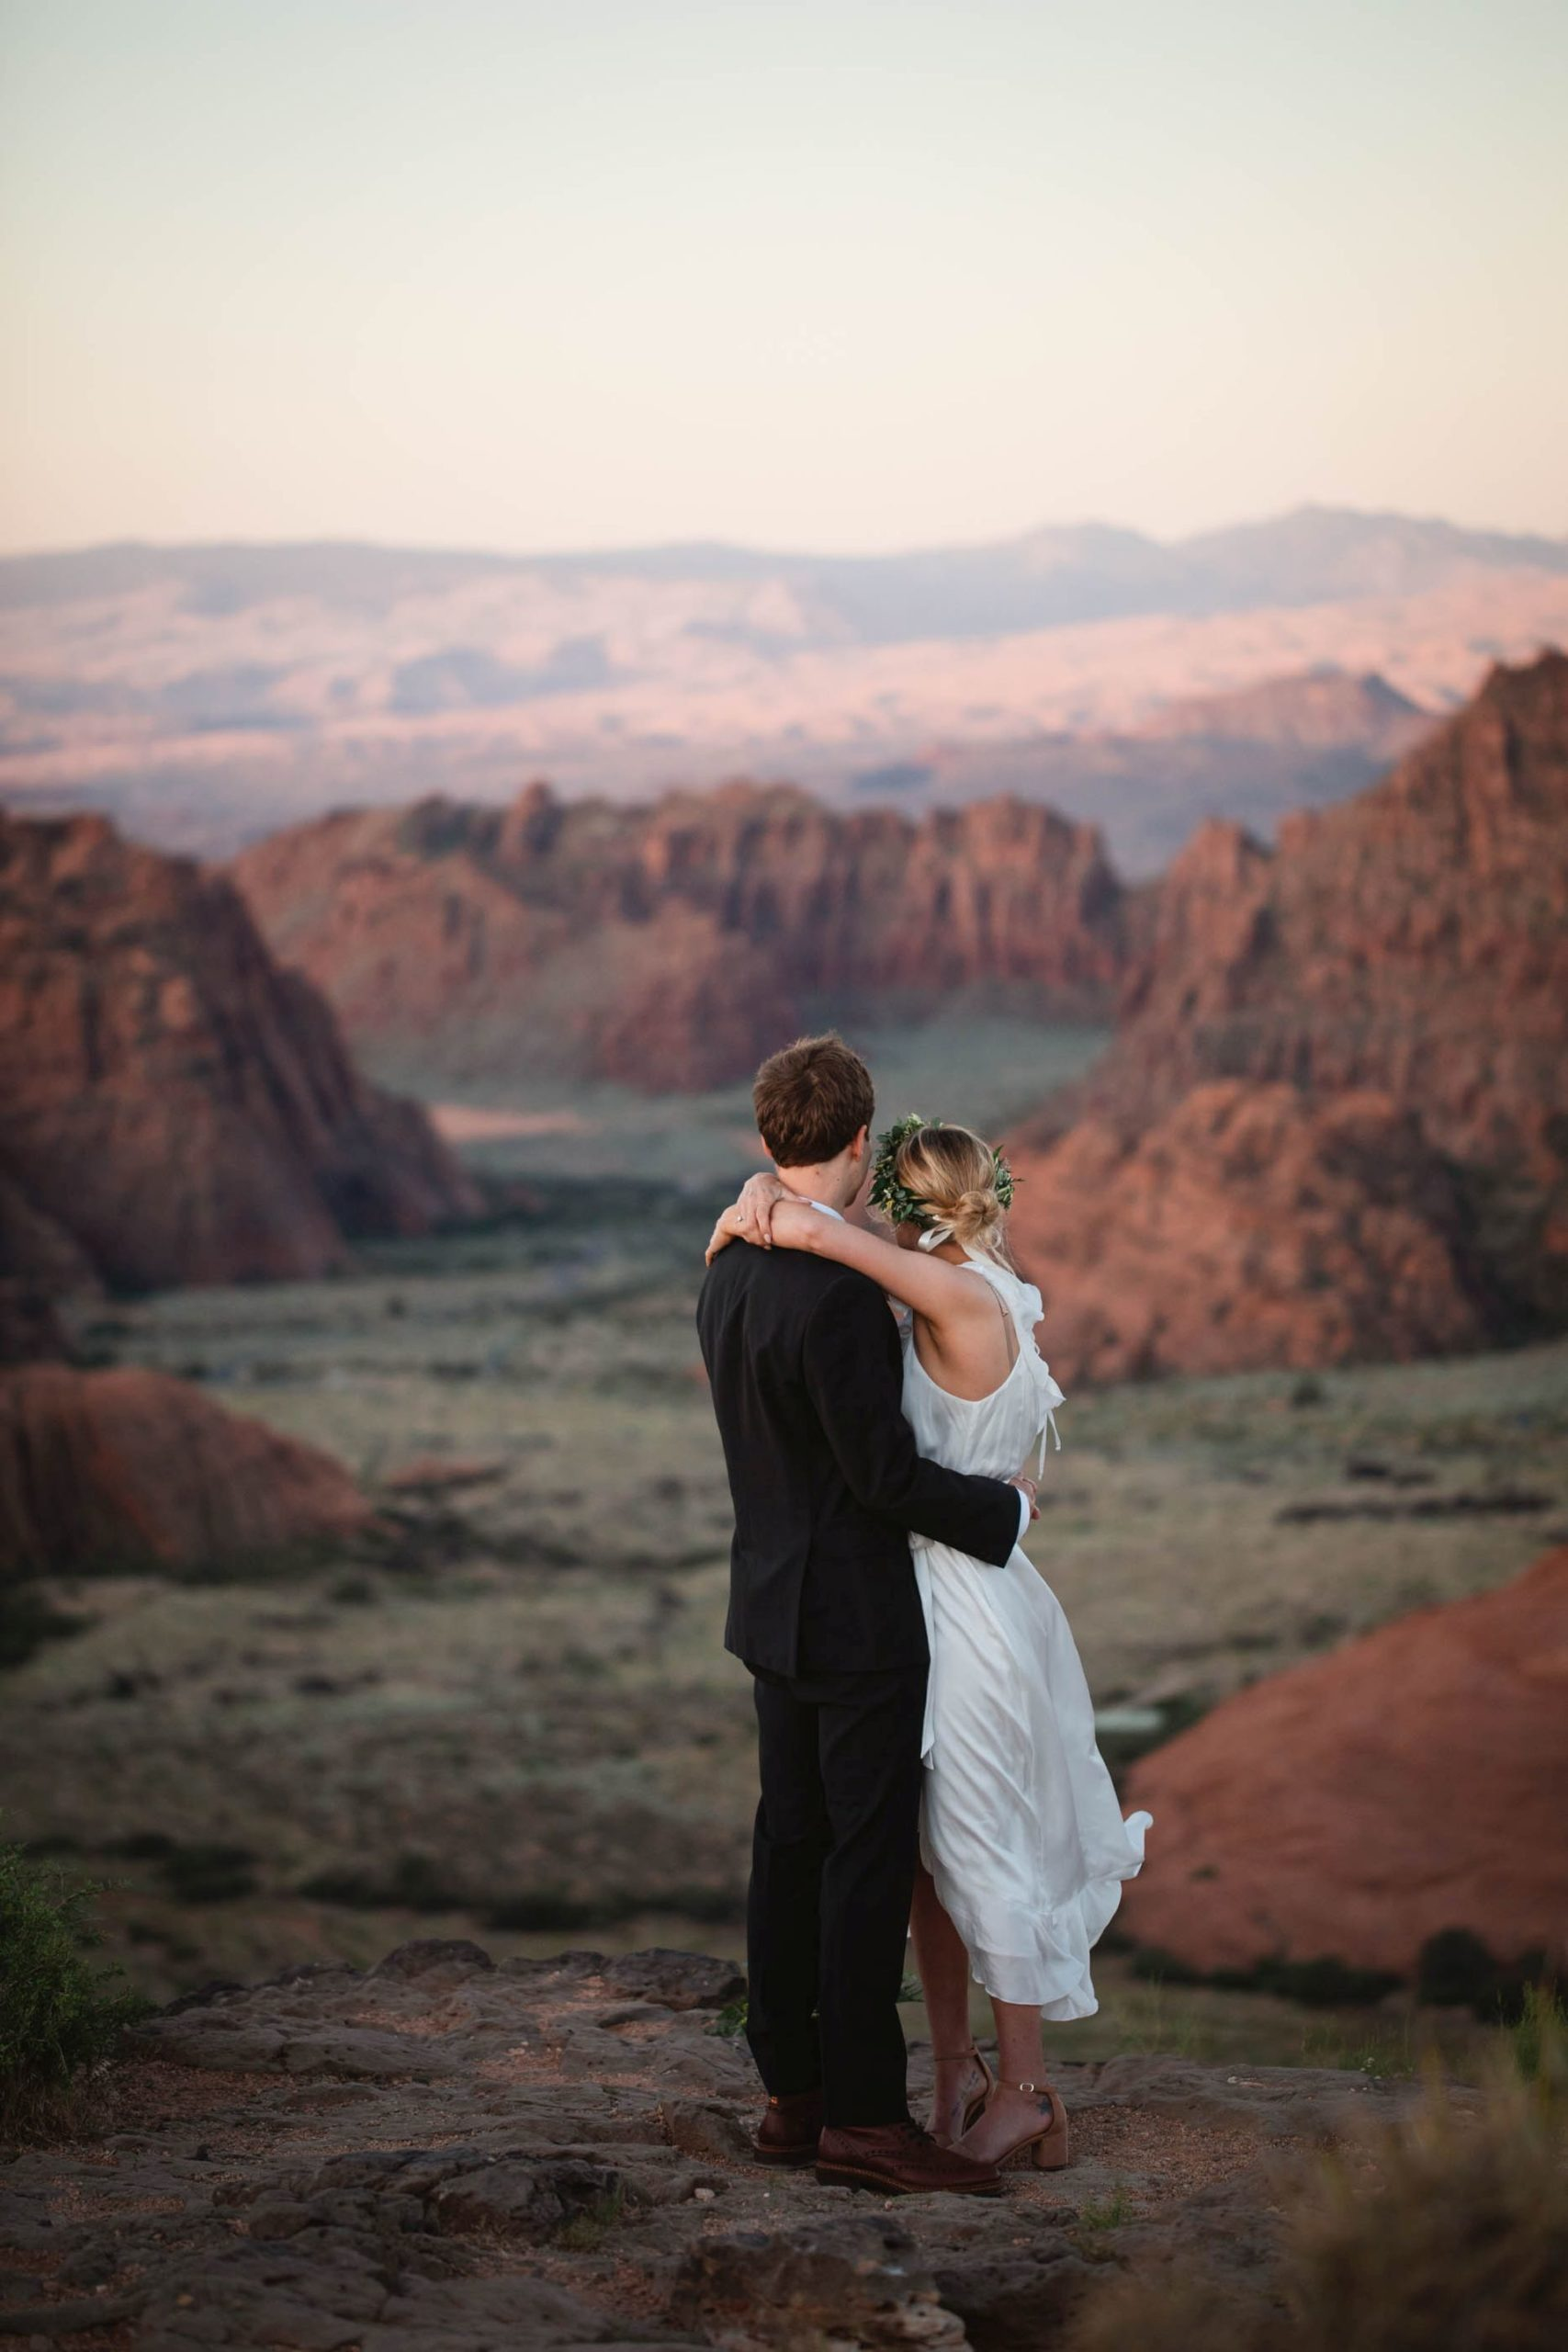 hike-out wedding utah desert - couple in front of desert views at sunset